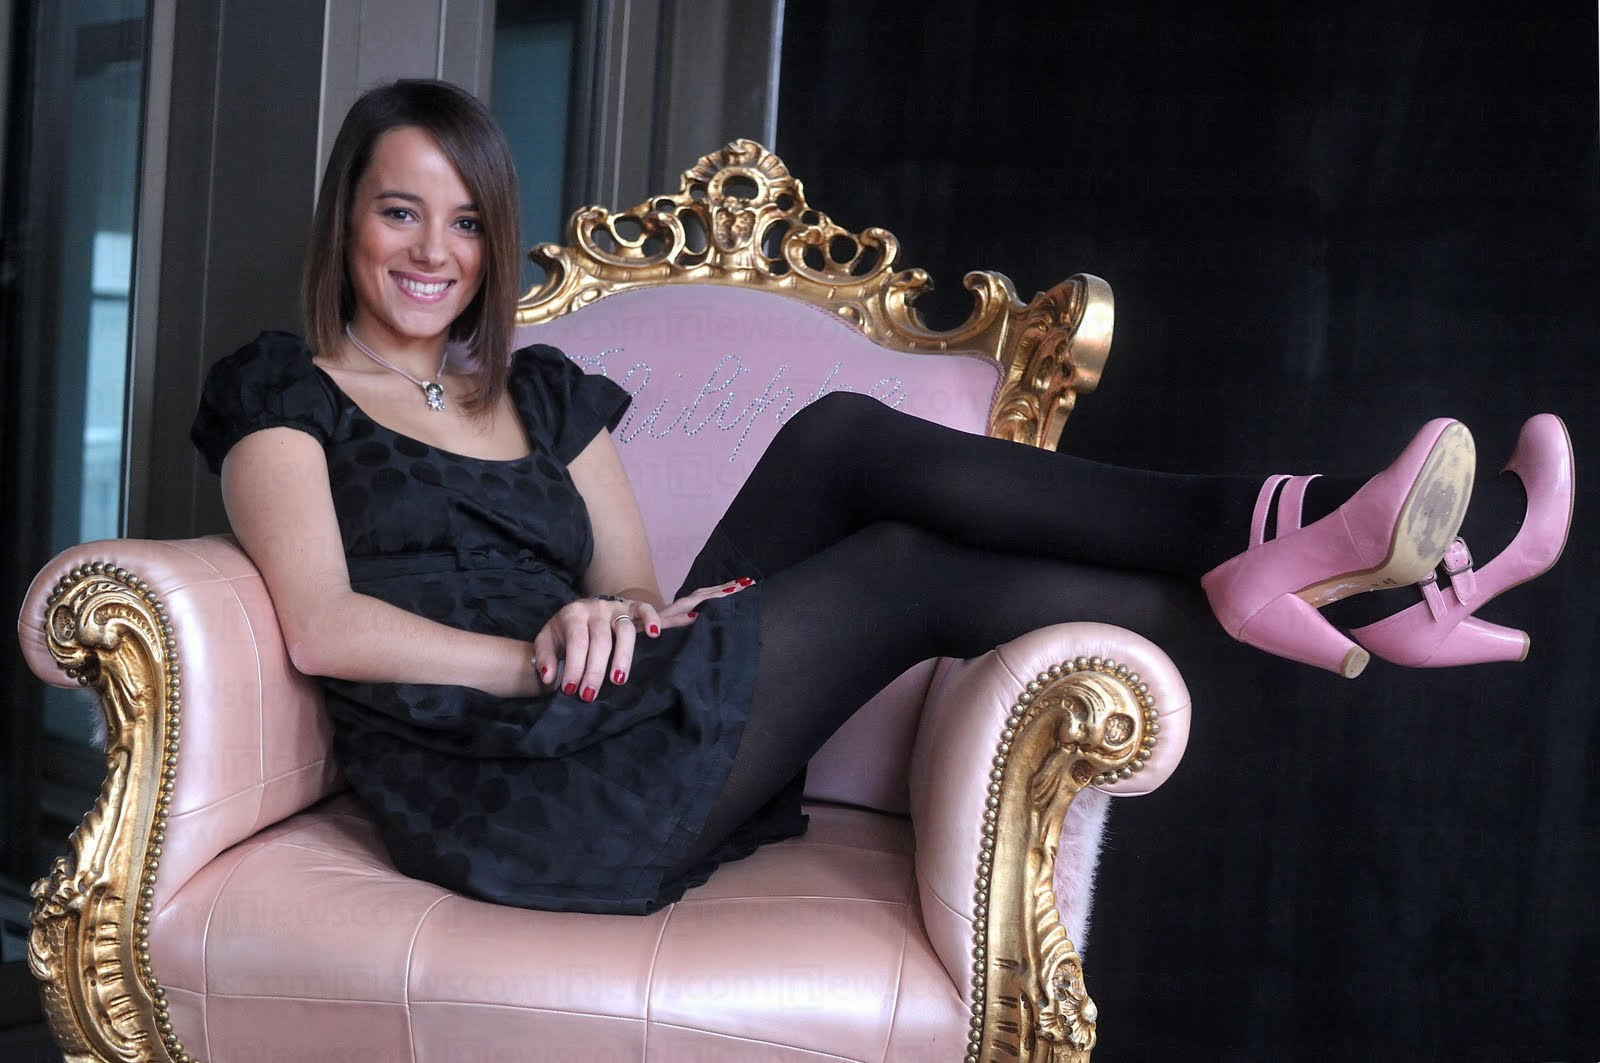 In alizee pantyhose jacotey